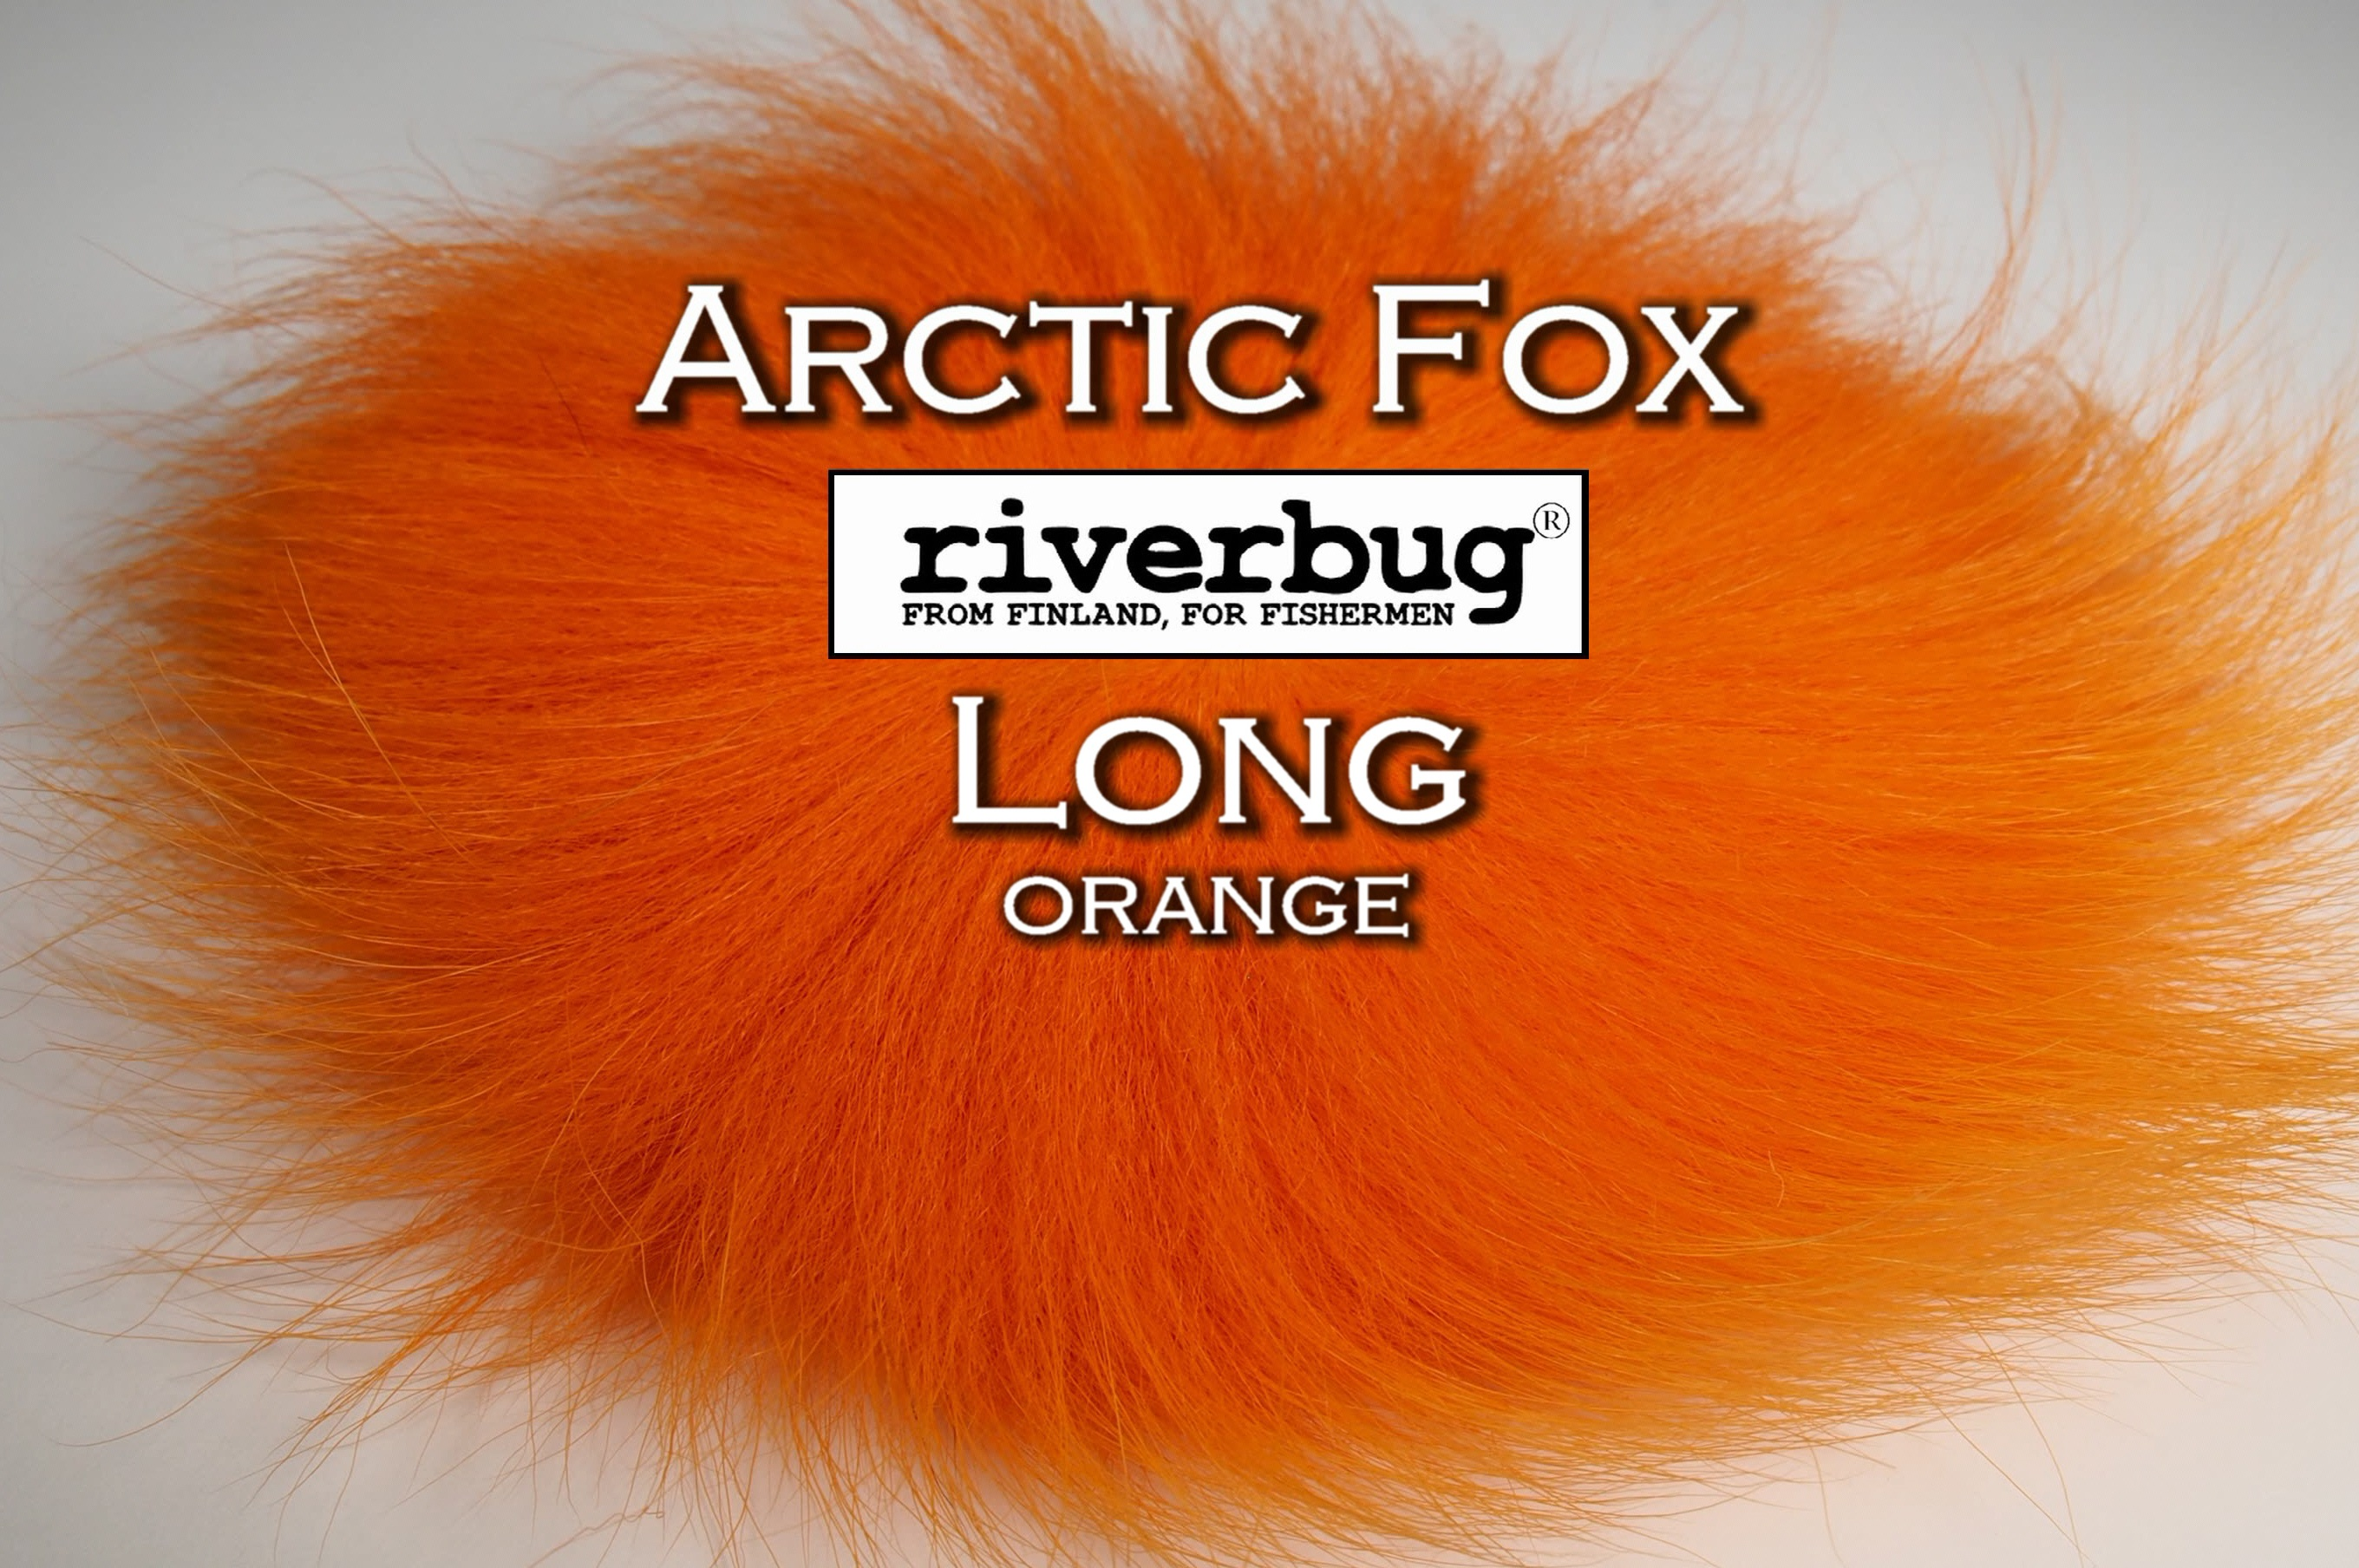 RiverBug / Beggar Fox materials. Color Orange. Good for any kind of salmon and trout flies. #putkiperho #tubefly #tubfluga #flytying #finn #finnlures #finland #riverbug #ketunkarva #foxfur #hotfoxfur #orange